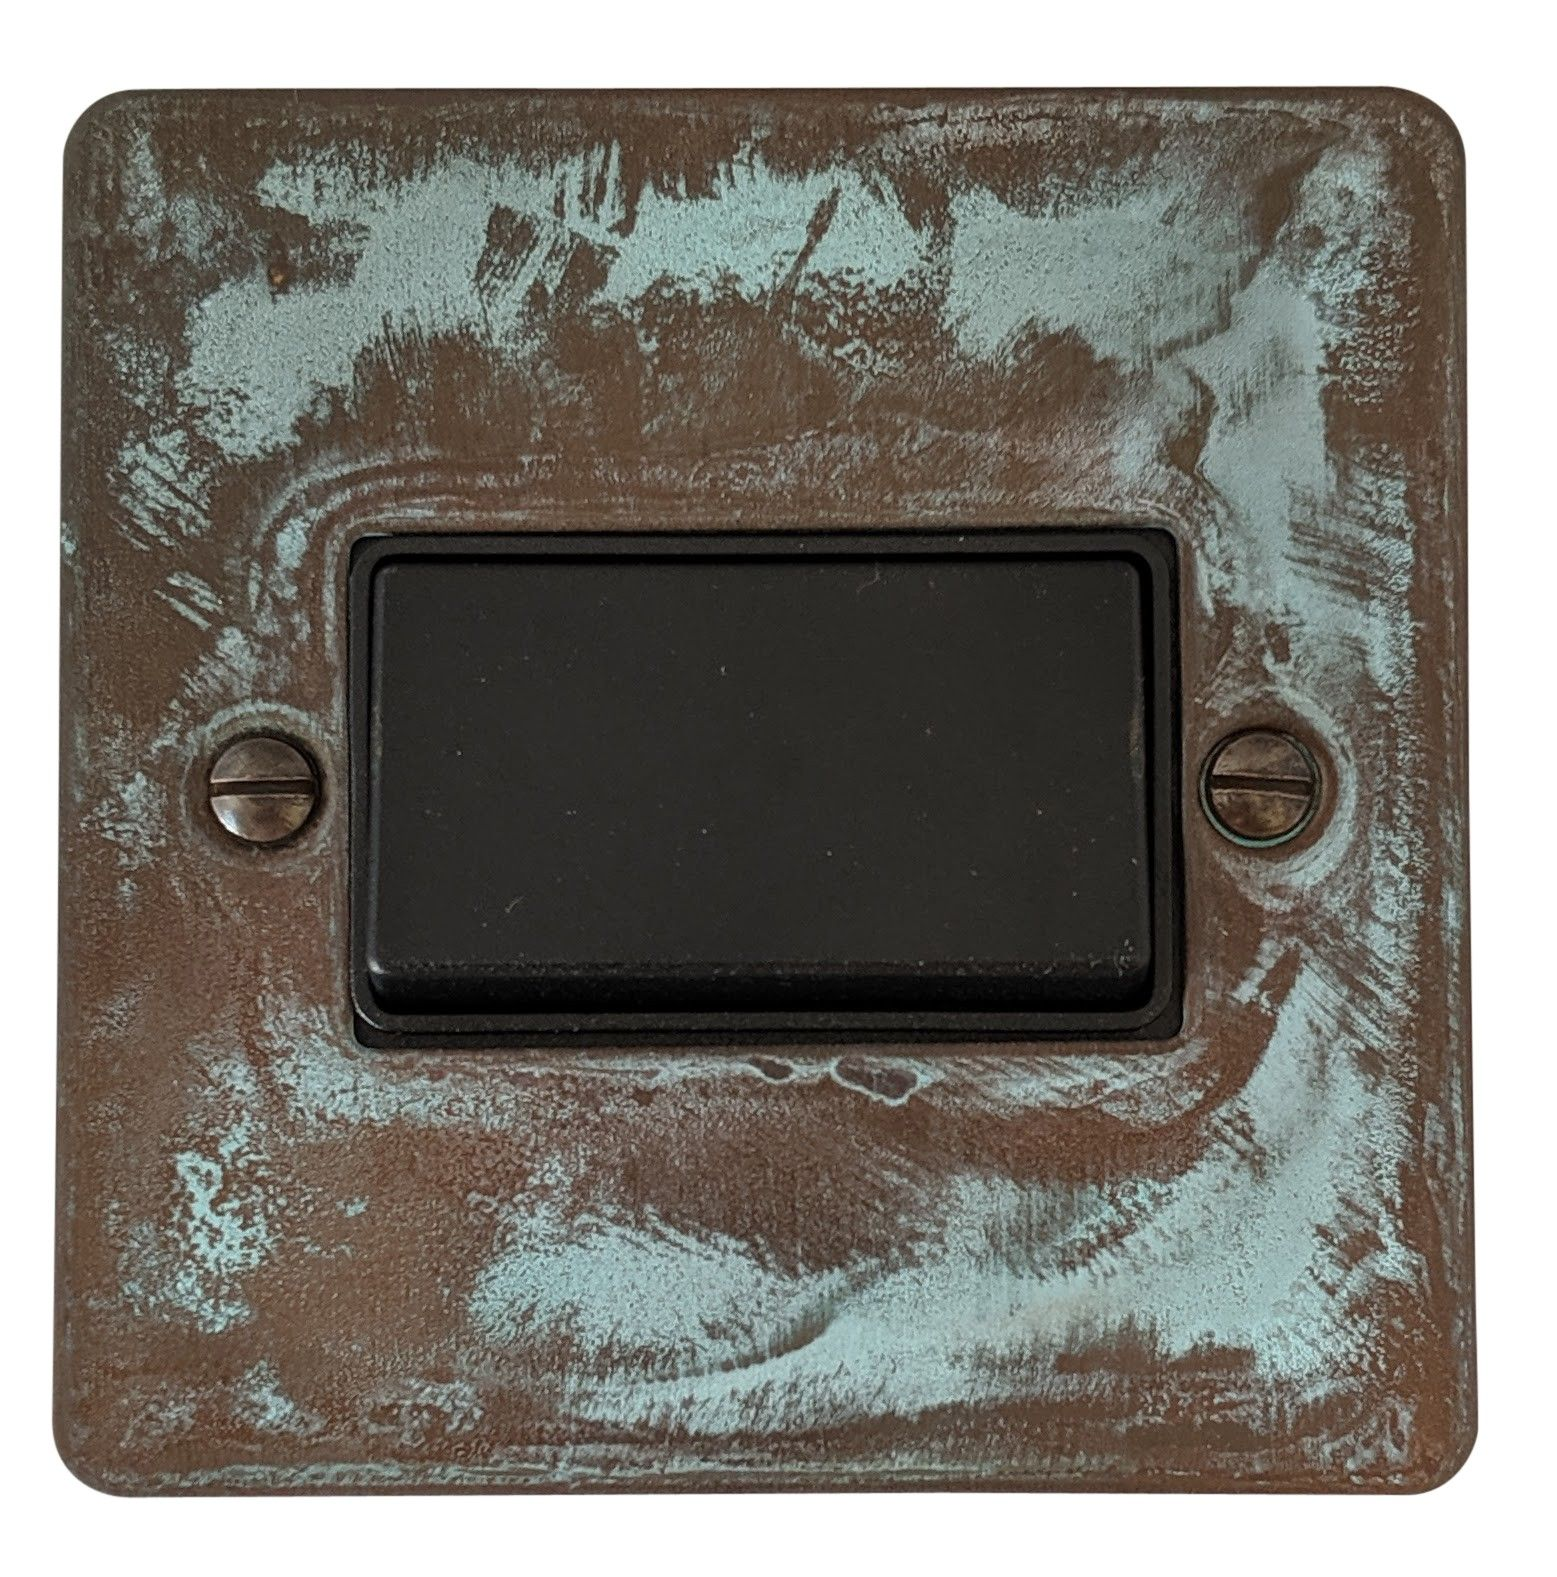 G&H FV69B Flat Plate Verdigris 1 Gang Triple Pole 10A Fan Isolator Switch